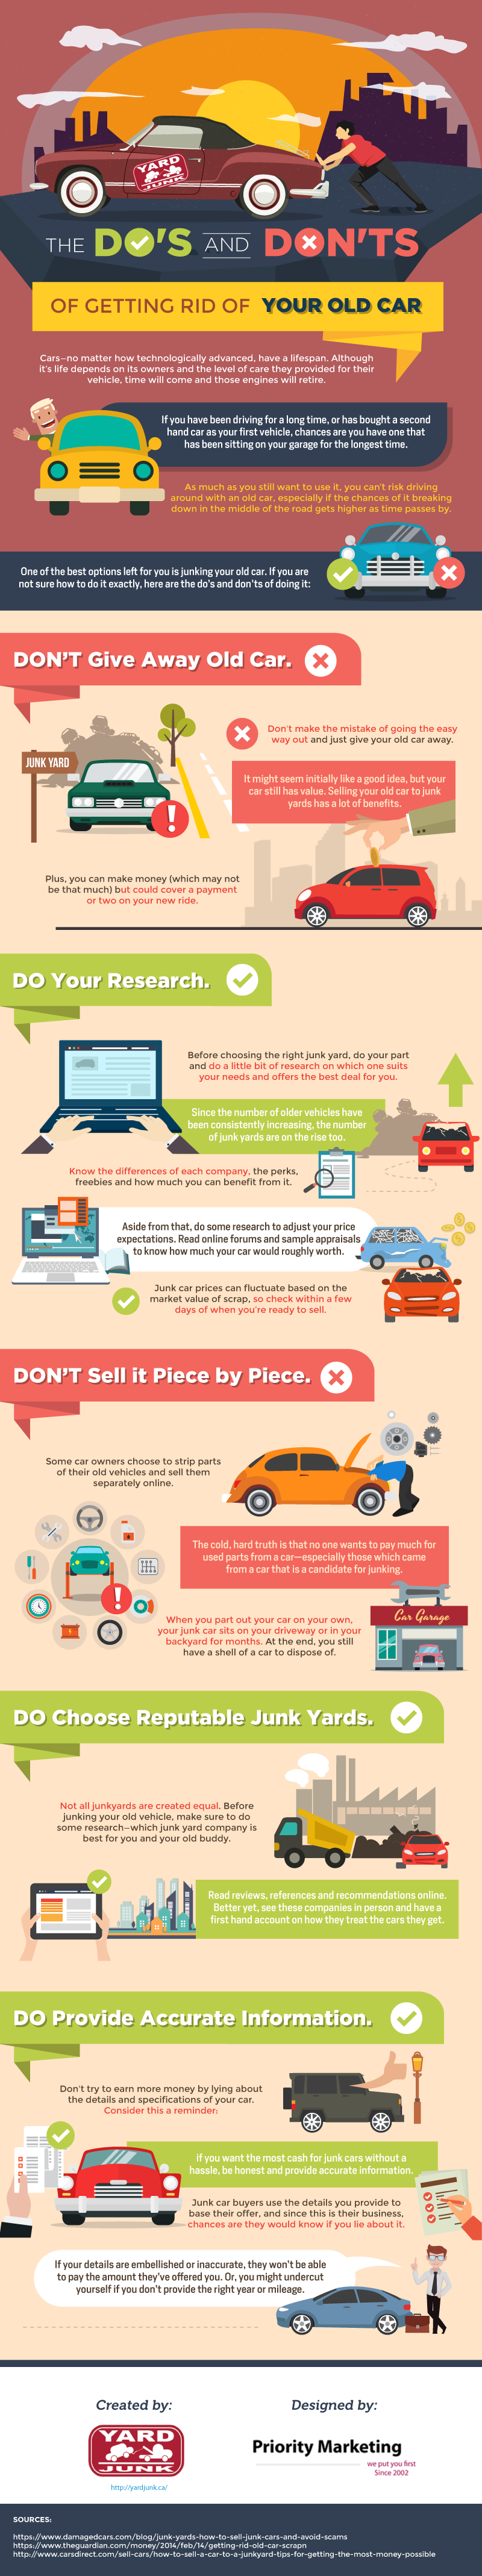 How to Sell Your Old'n'Broke Car: Do's and Don'ts Guide - Infographic